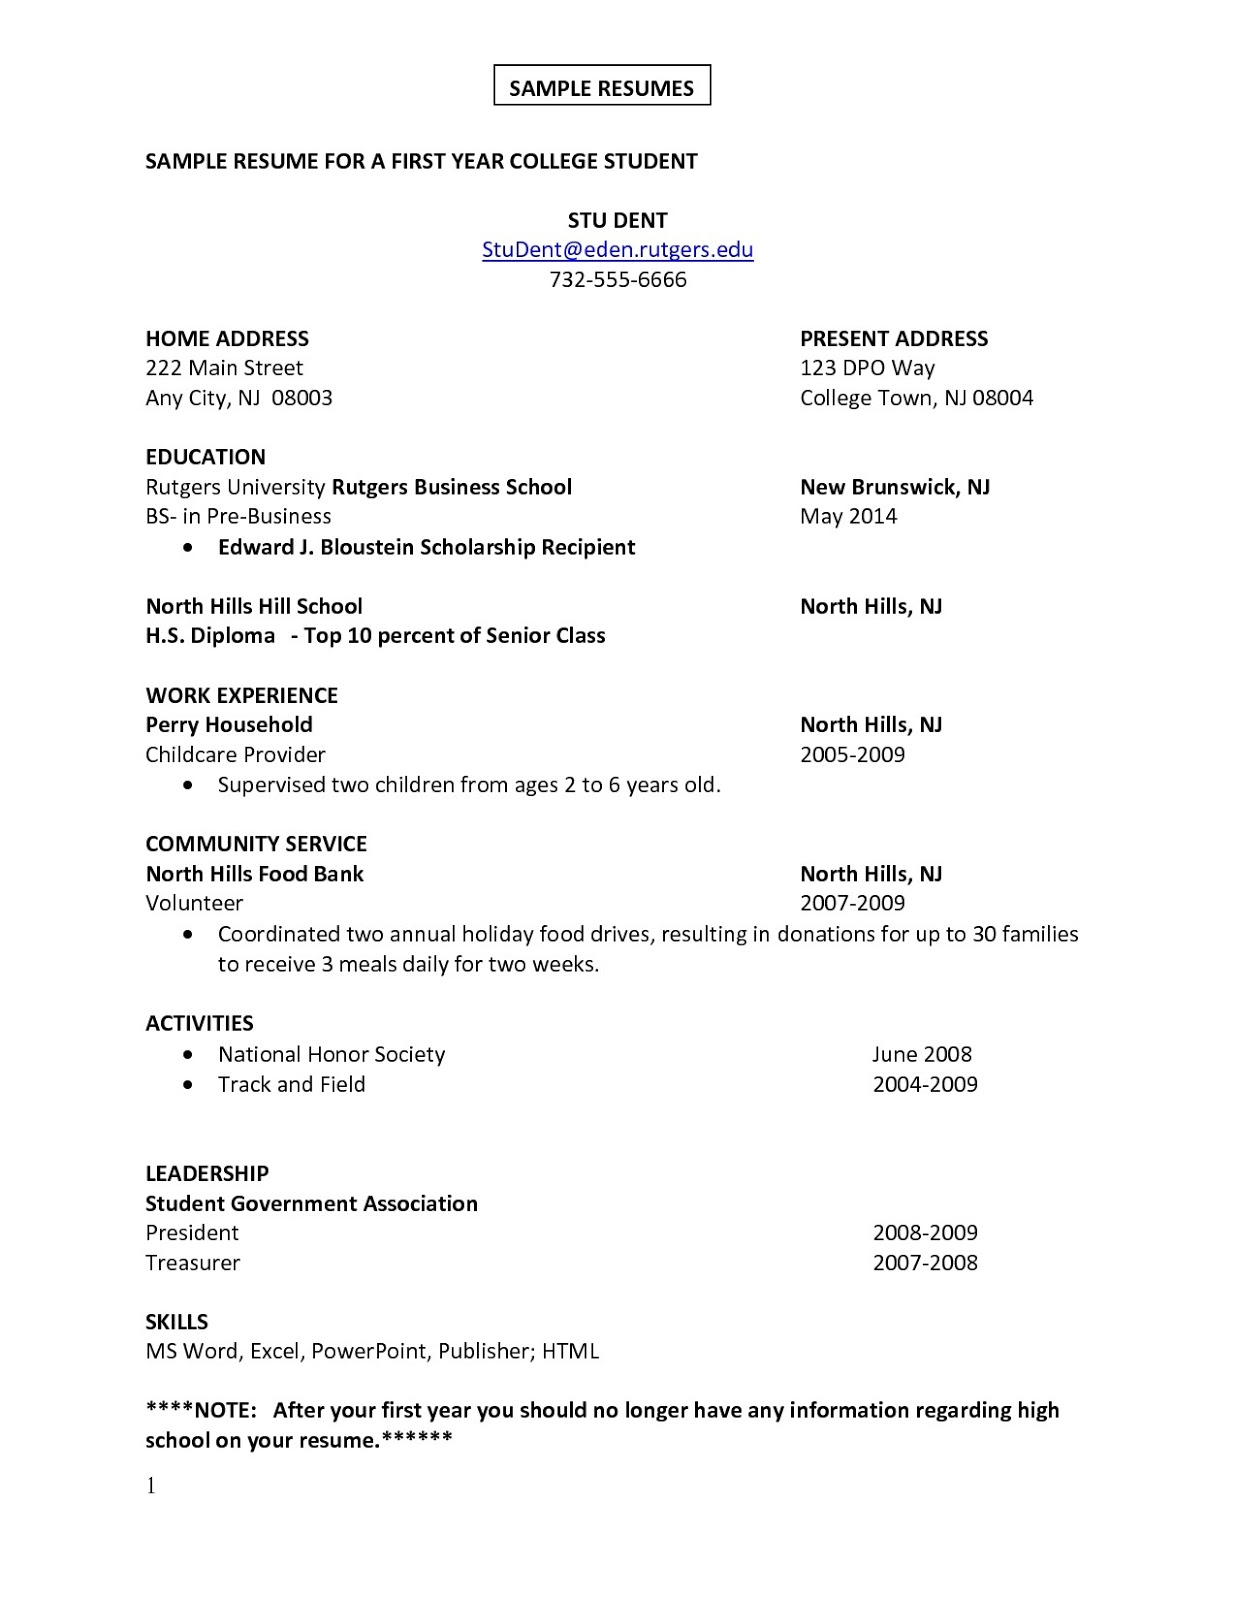 One Job Resume Template